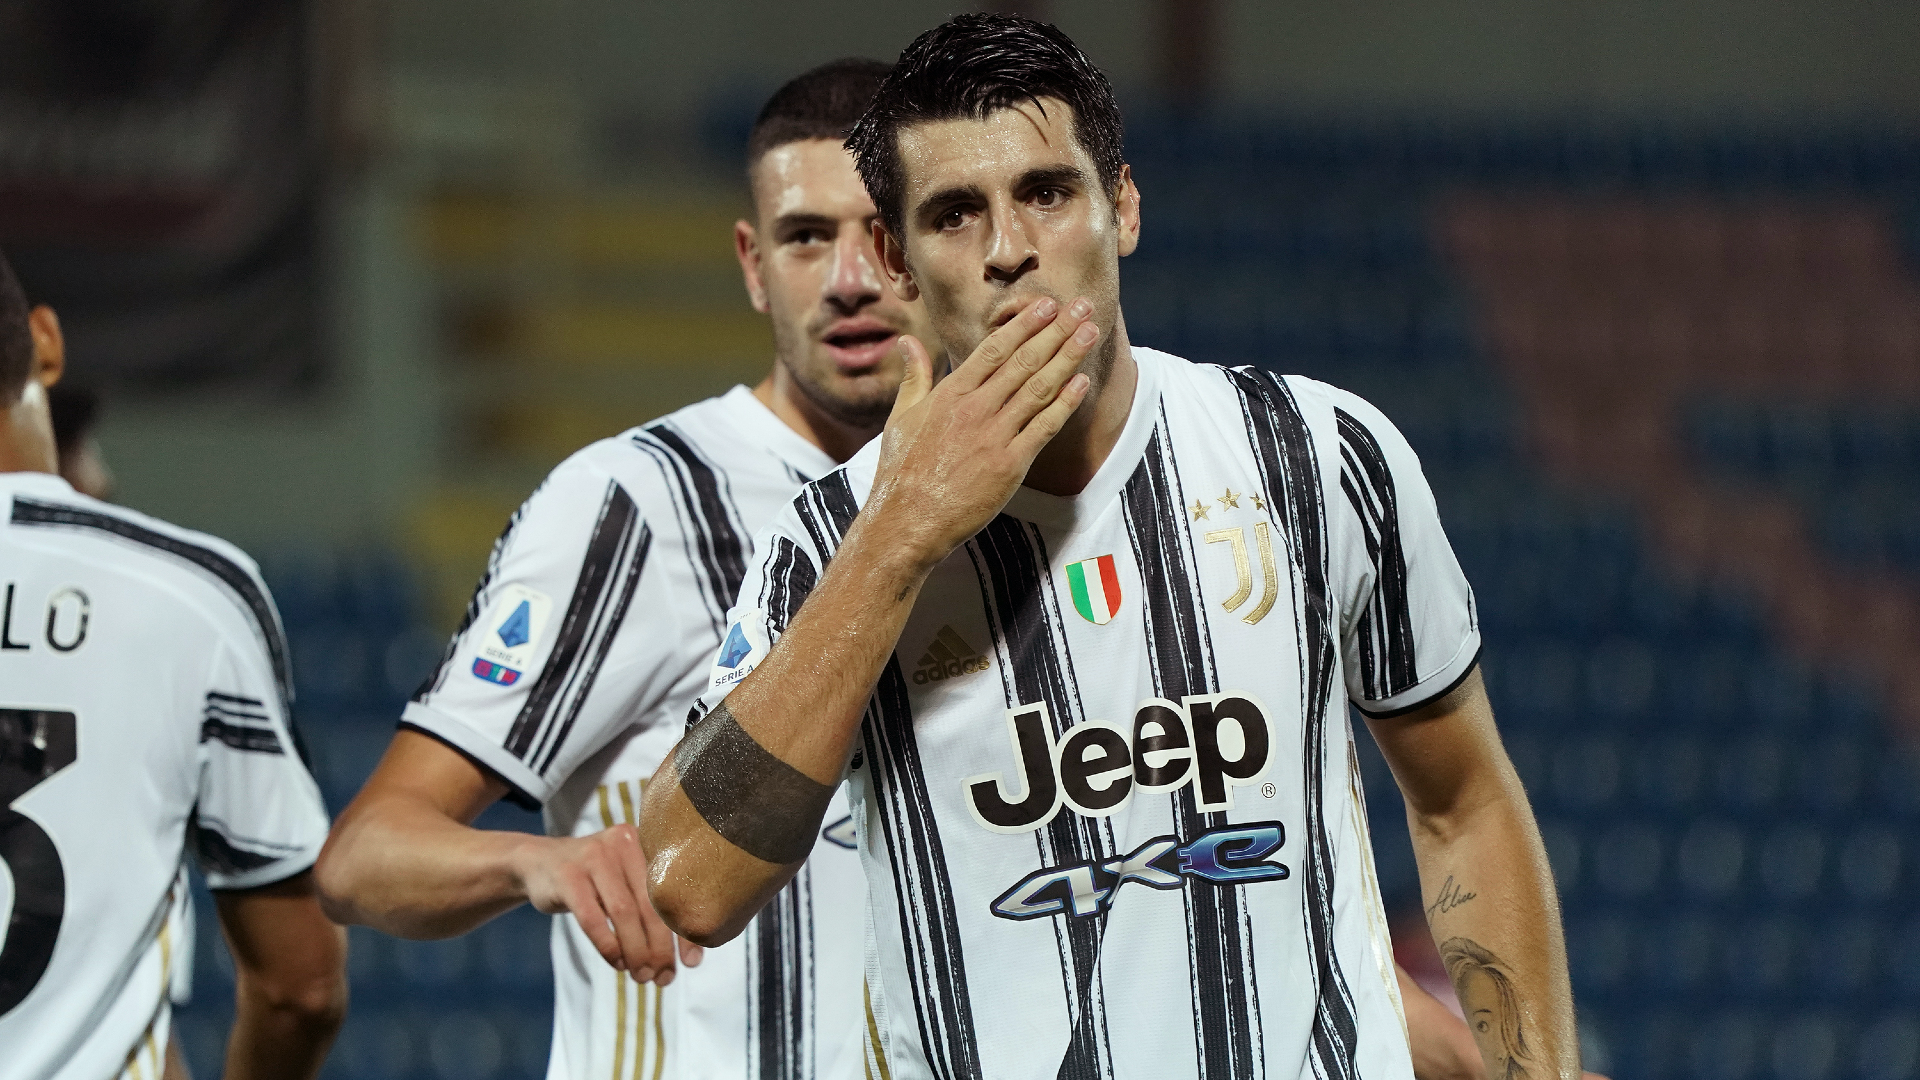 Juventus match-winner Morata can be one of the world's best strikers, says Pirlo